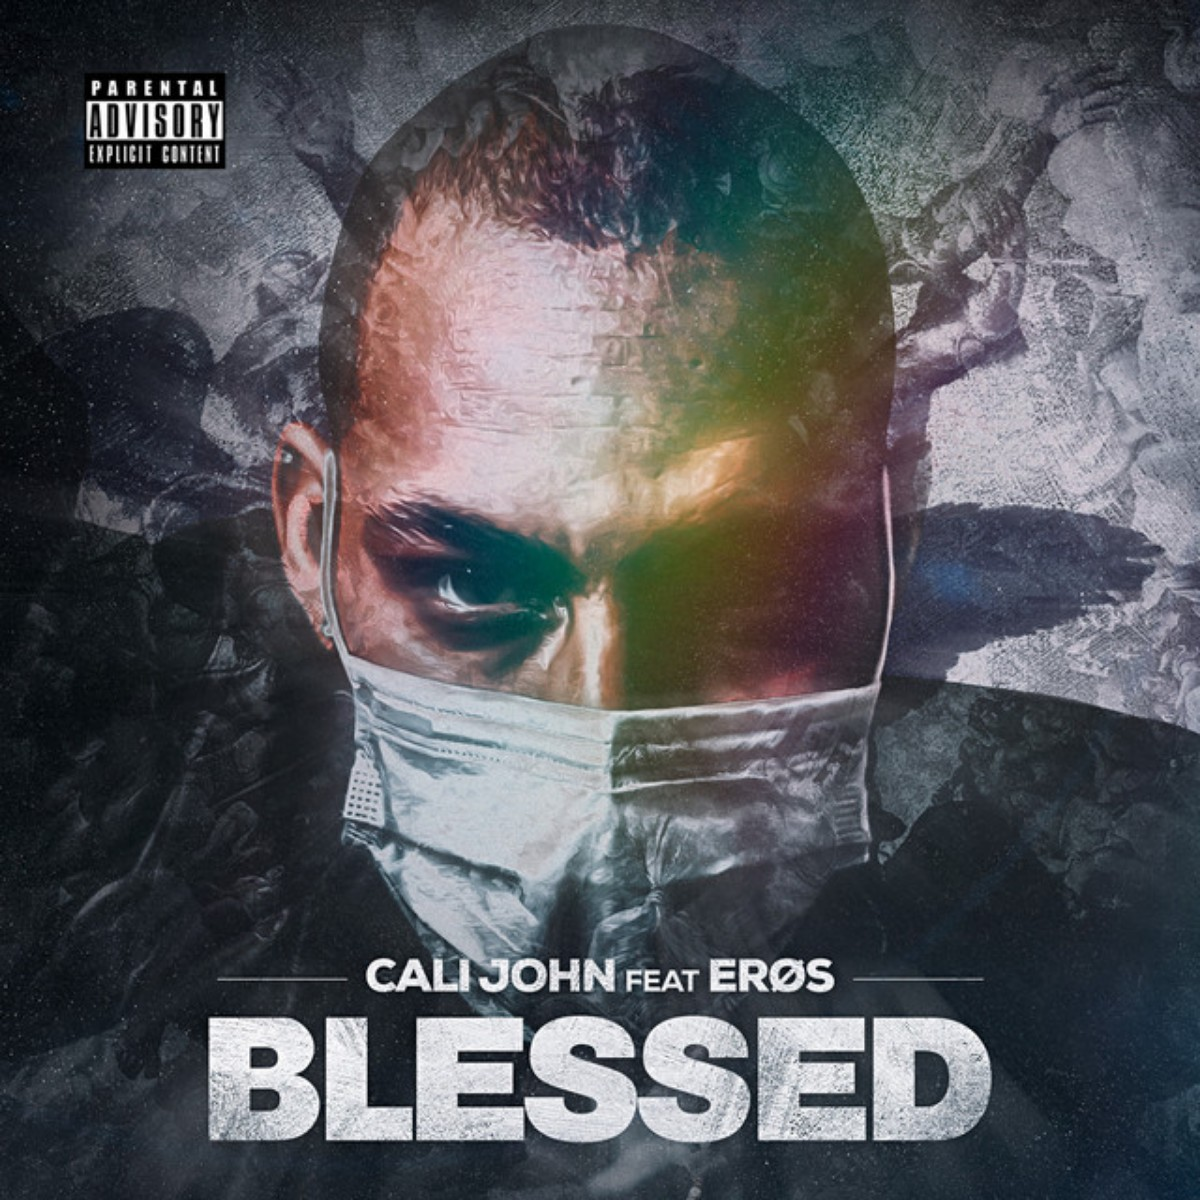 Cali John - Blessed (feat. Erøs)